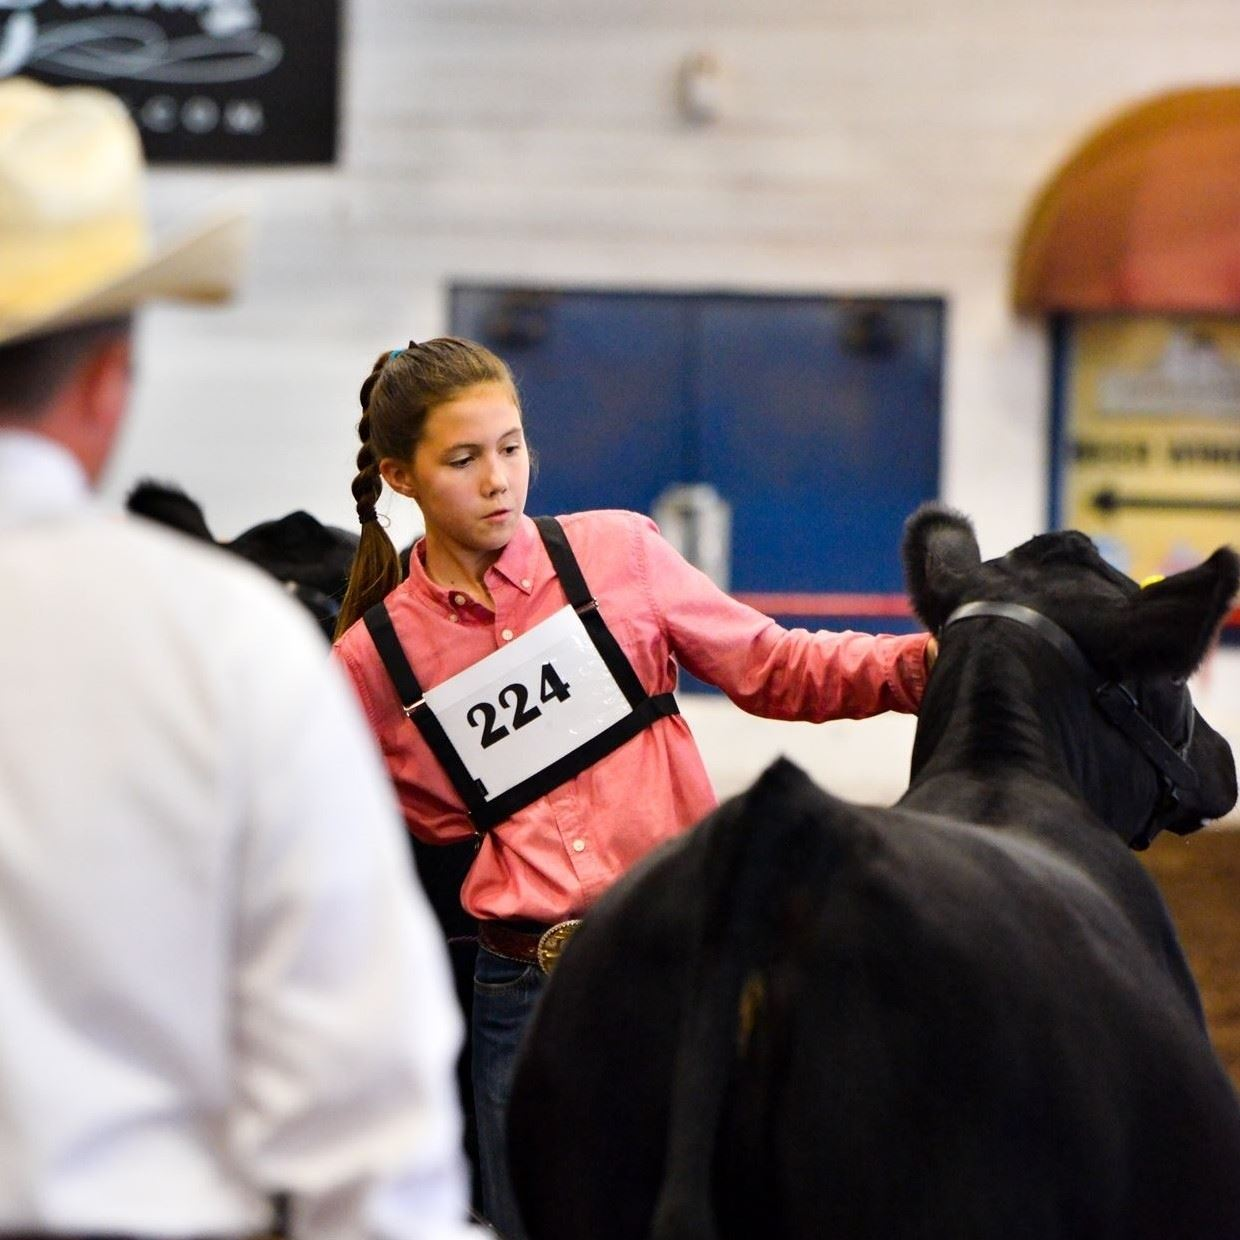 Young girl showing a black heifer while a judge examines her animal.